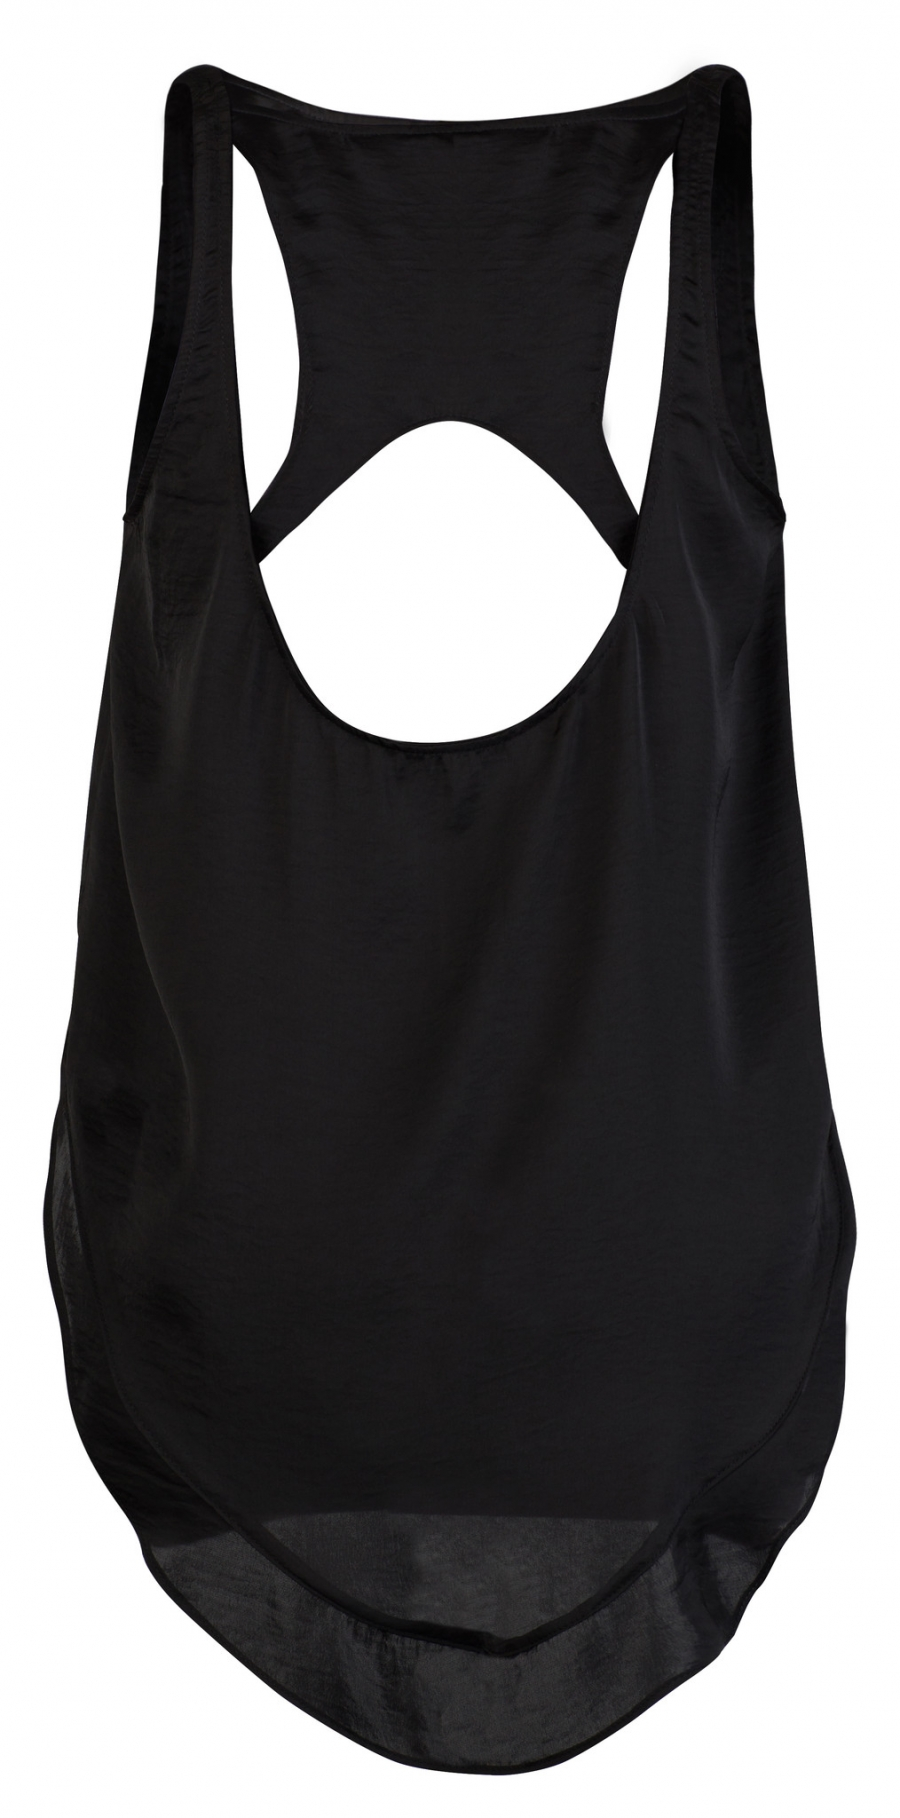 Satin Racer Back Tank - Black